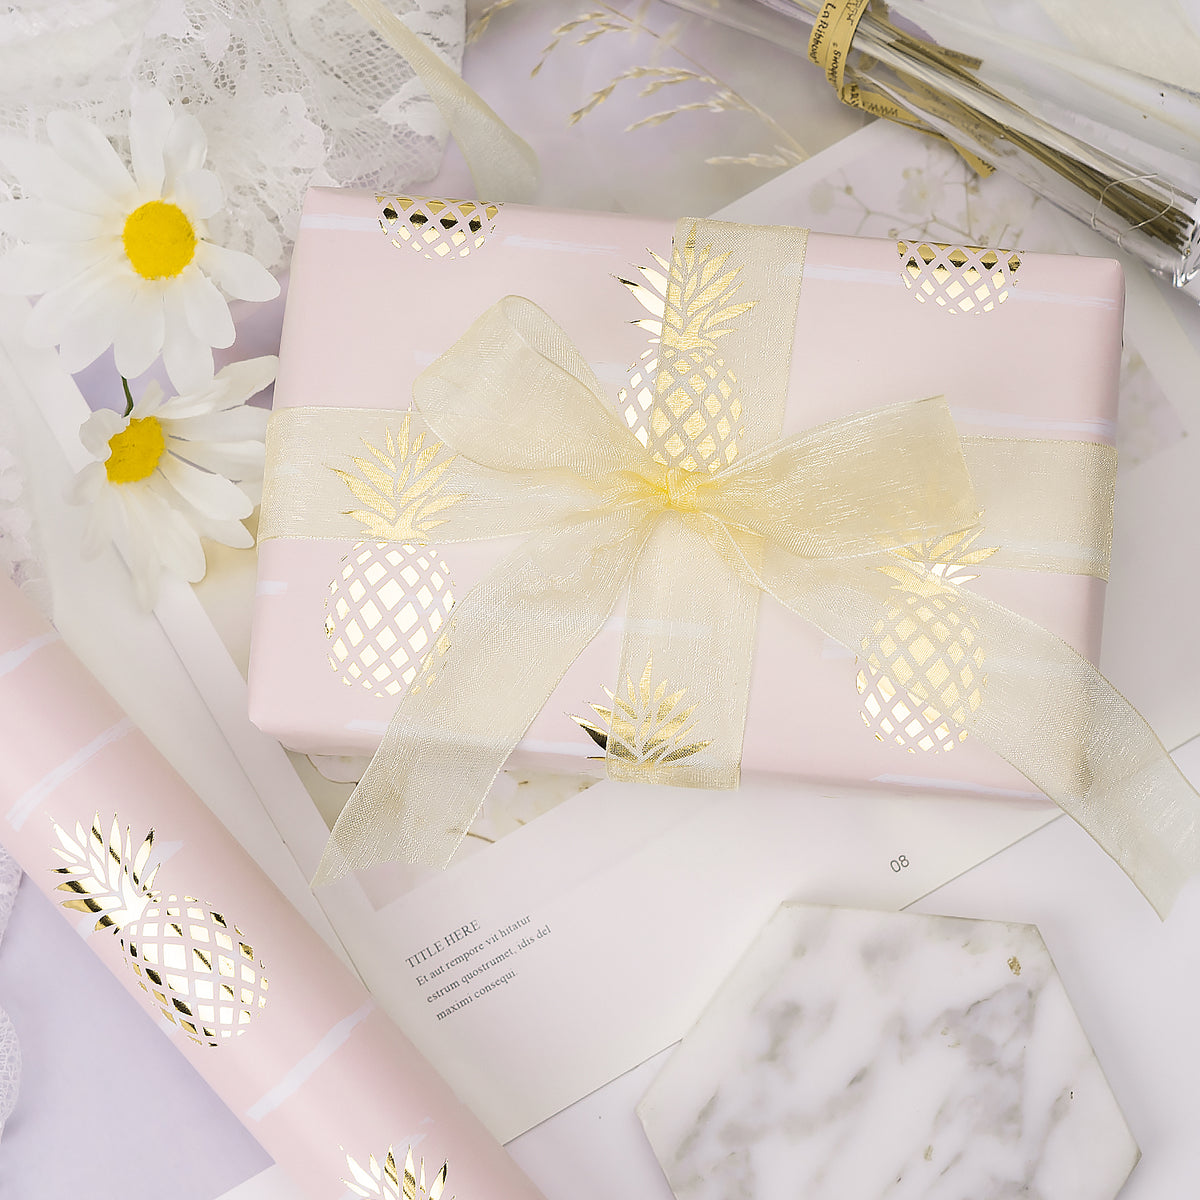 Wrapaholic-Pastel-Pink- Color-with-Foil-Pineapple- Design-Gift-Wrapping-Paper-Roll-4